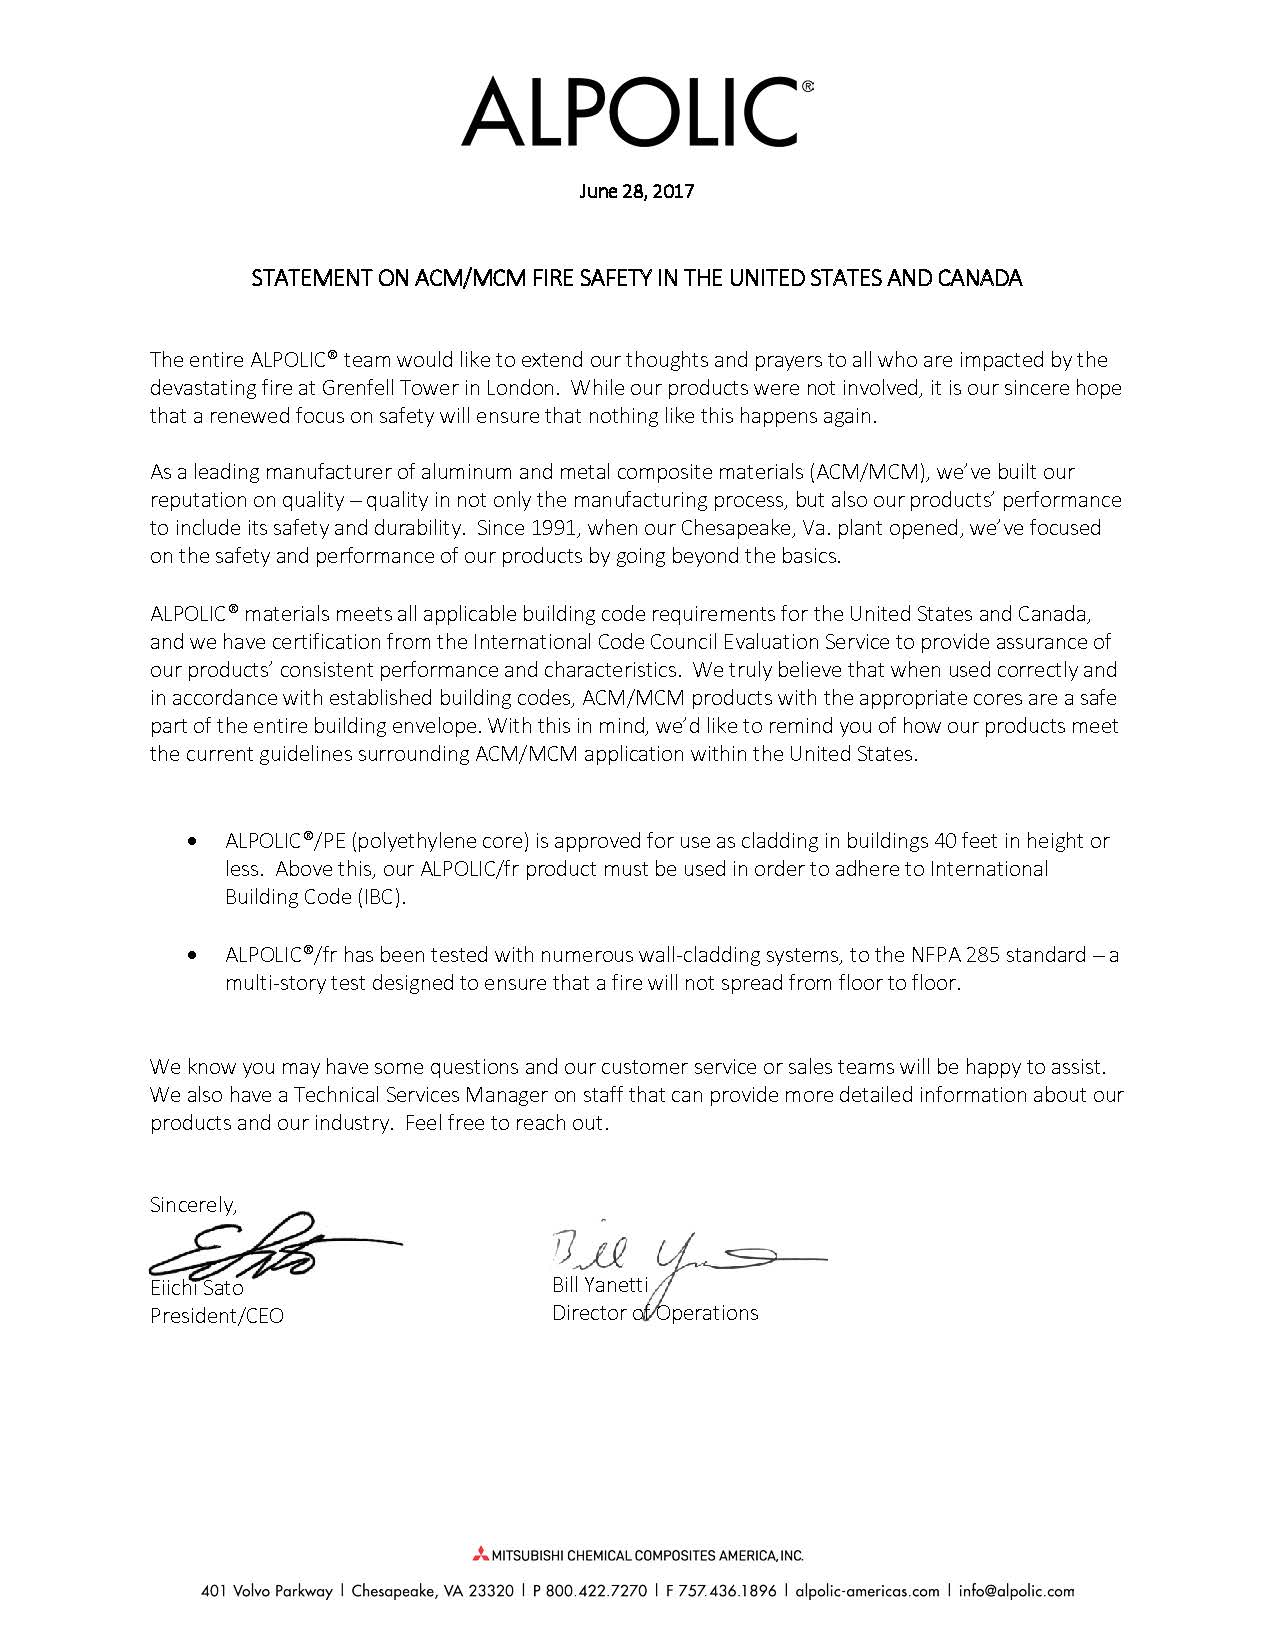 Statement on ACM/MCM Fire Safety in the United States and Canada